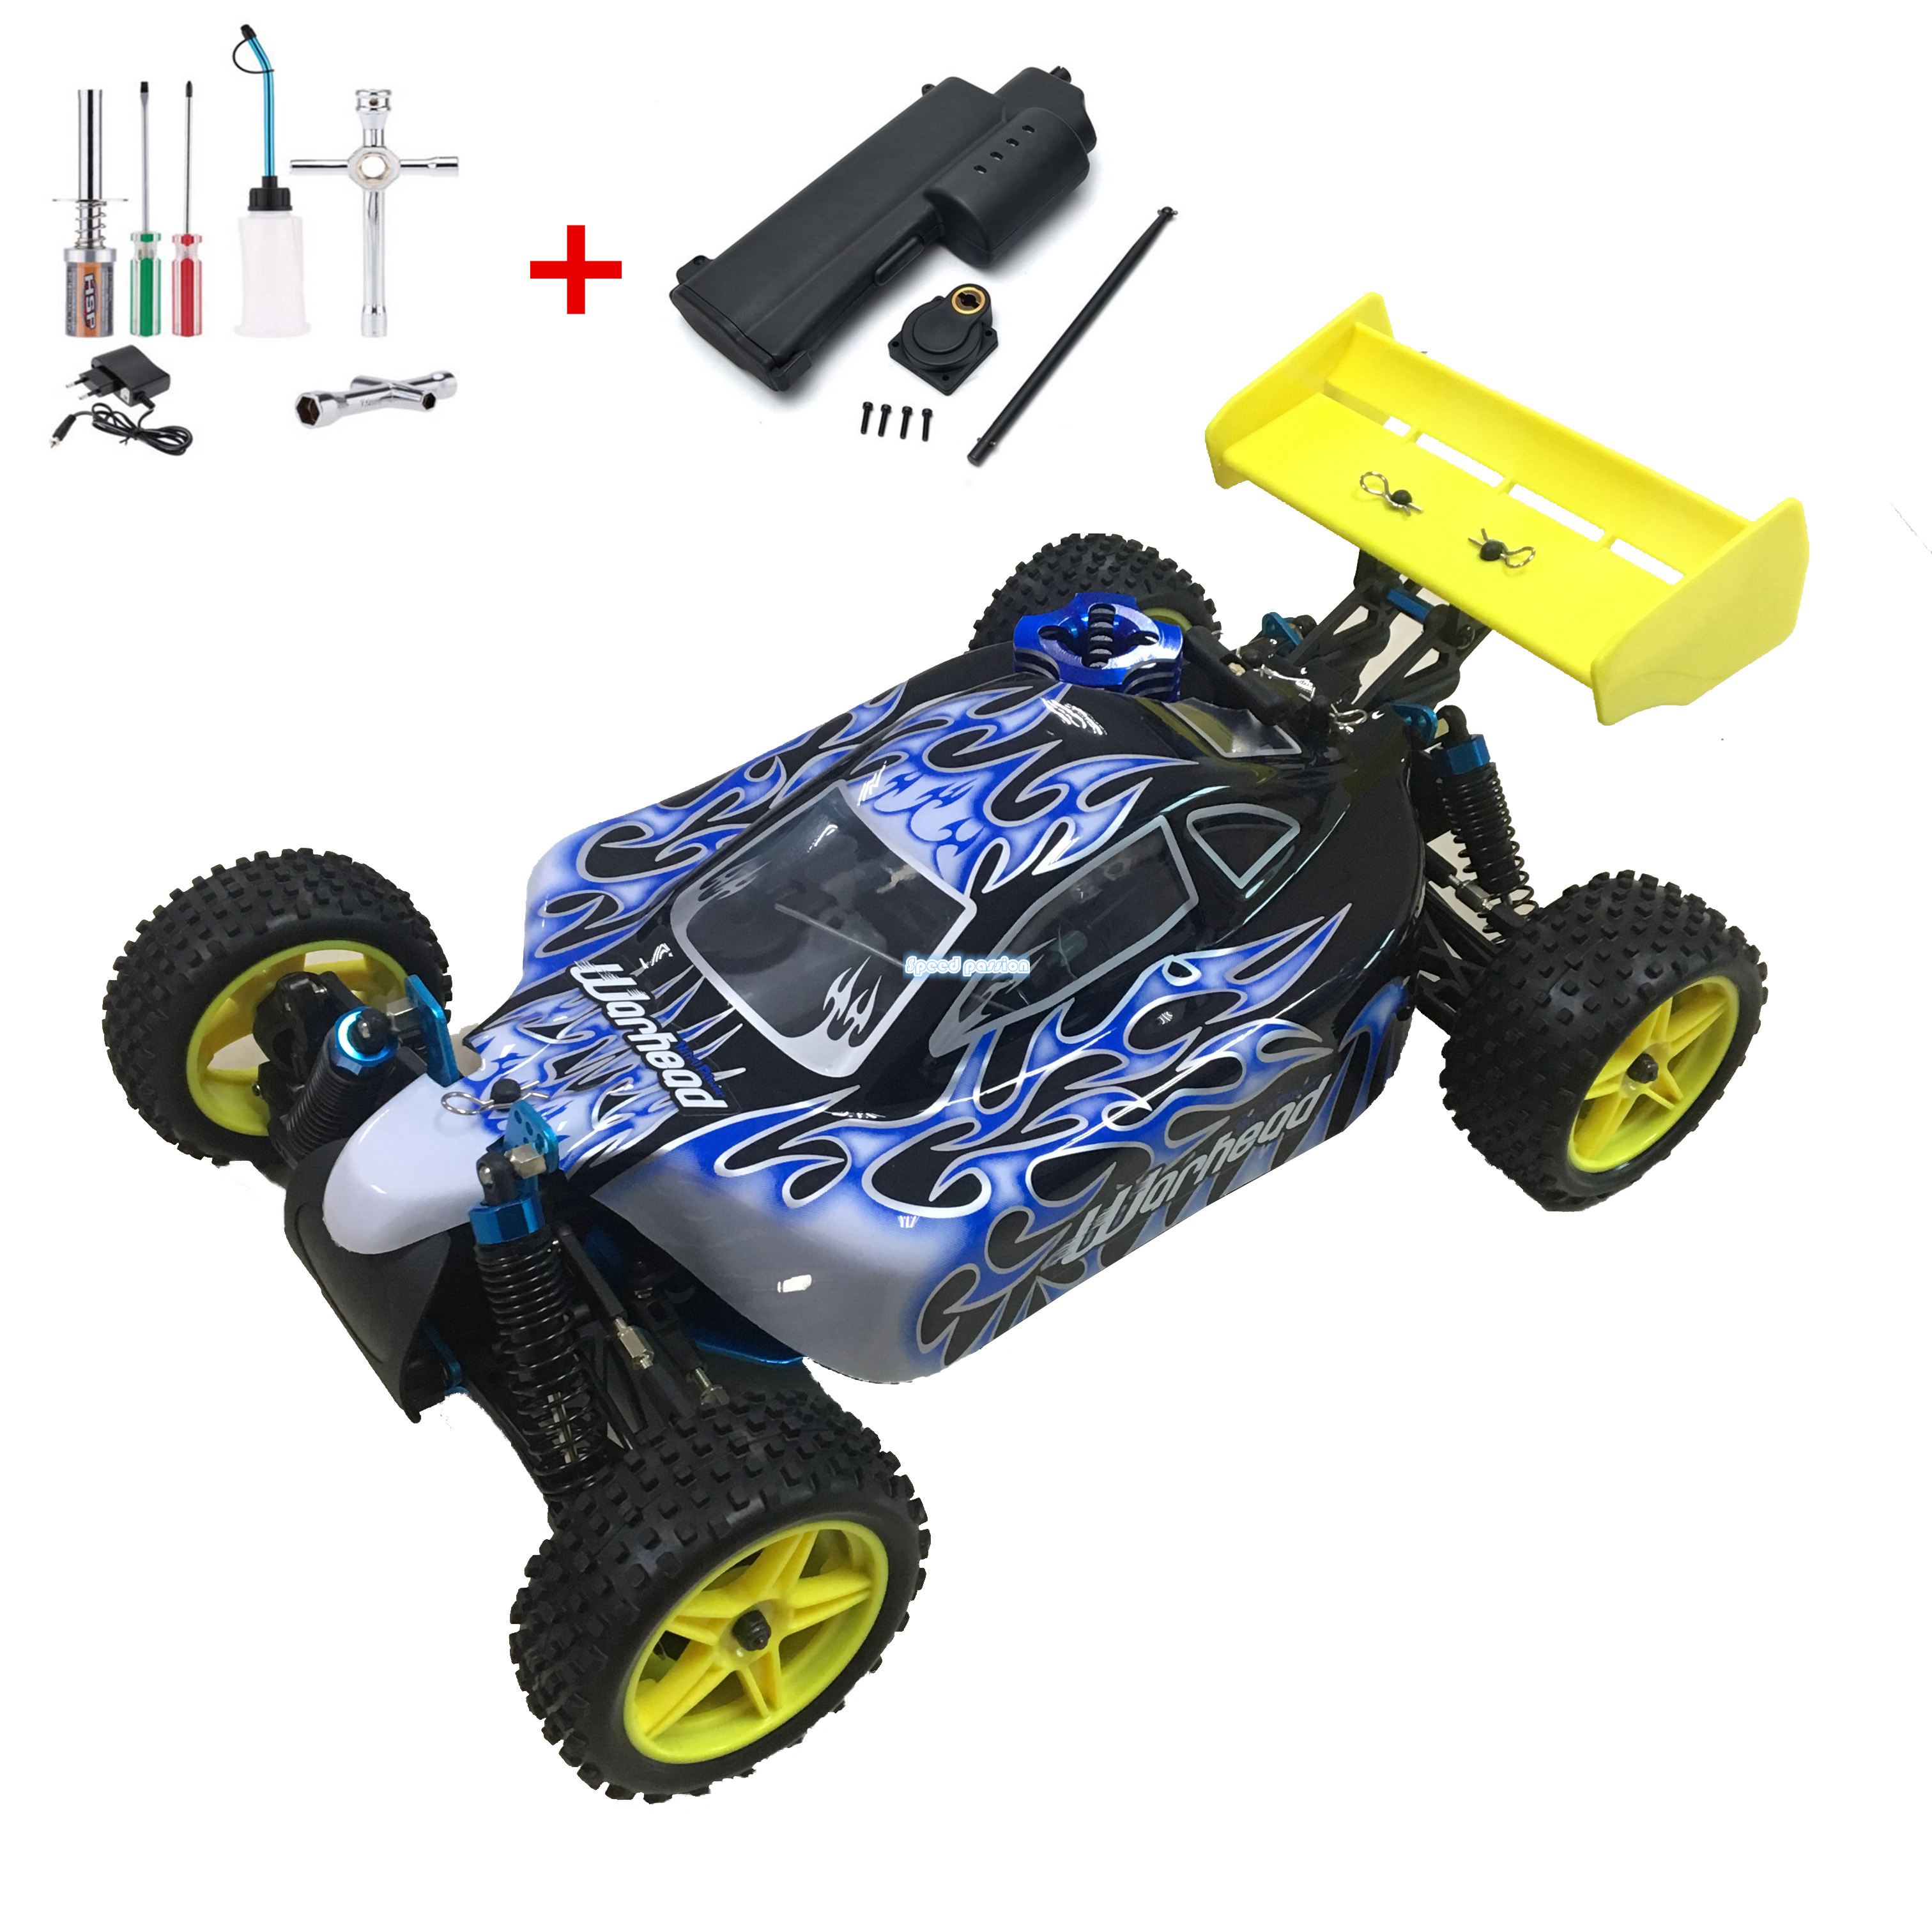 HSP 4WD RC Car 1:10 Two Speed Vehicle Nitro Power Off Road Buggy Racing Car